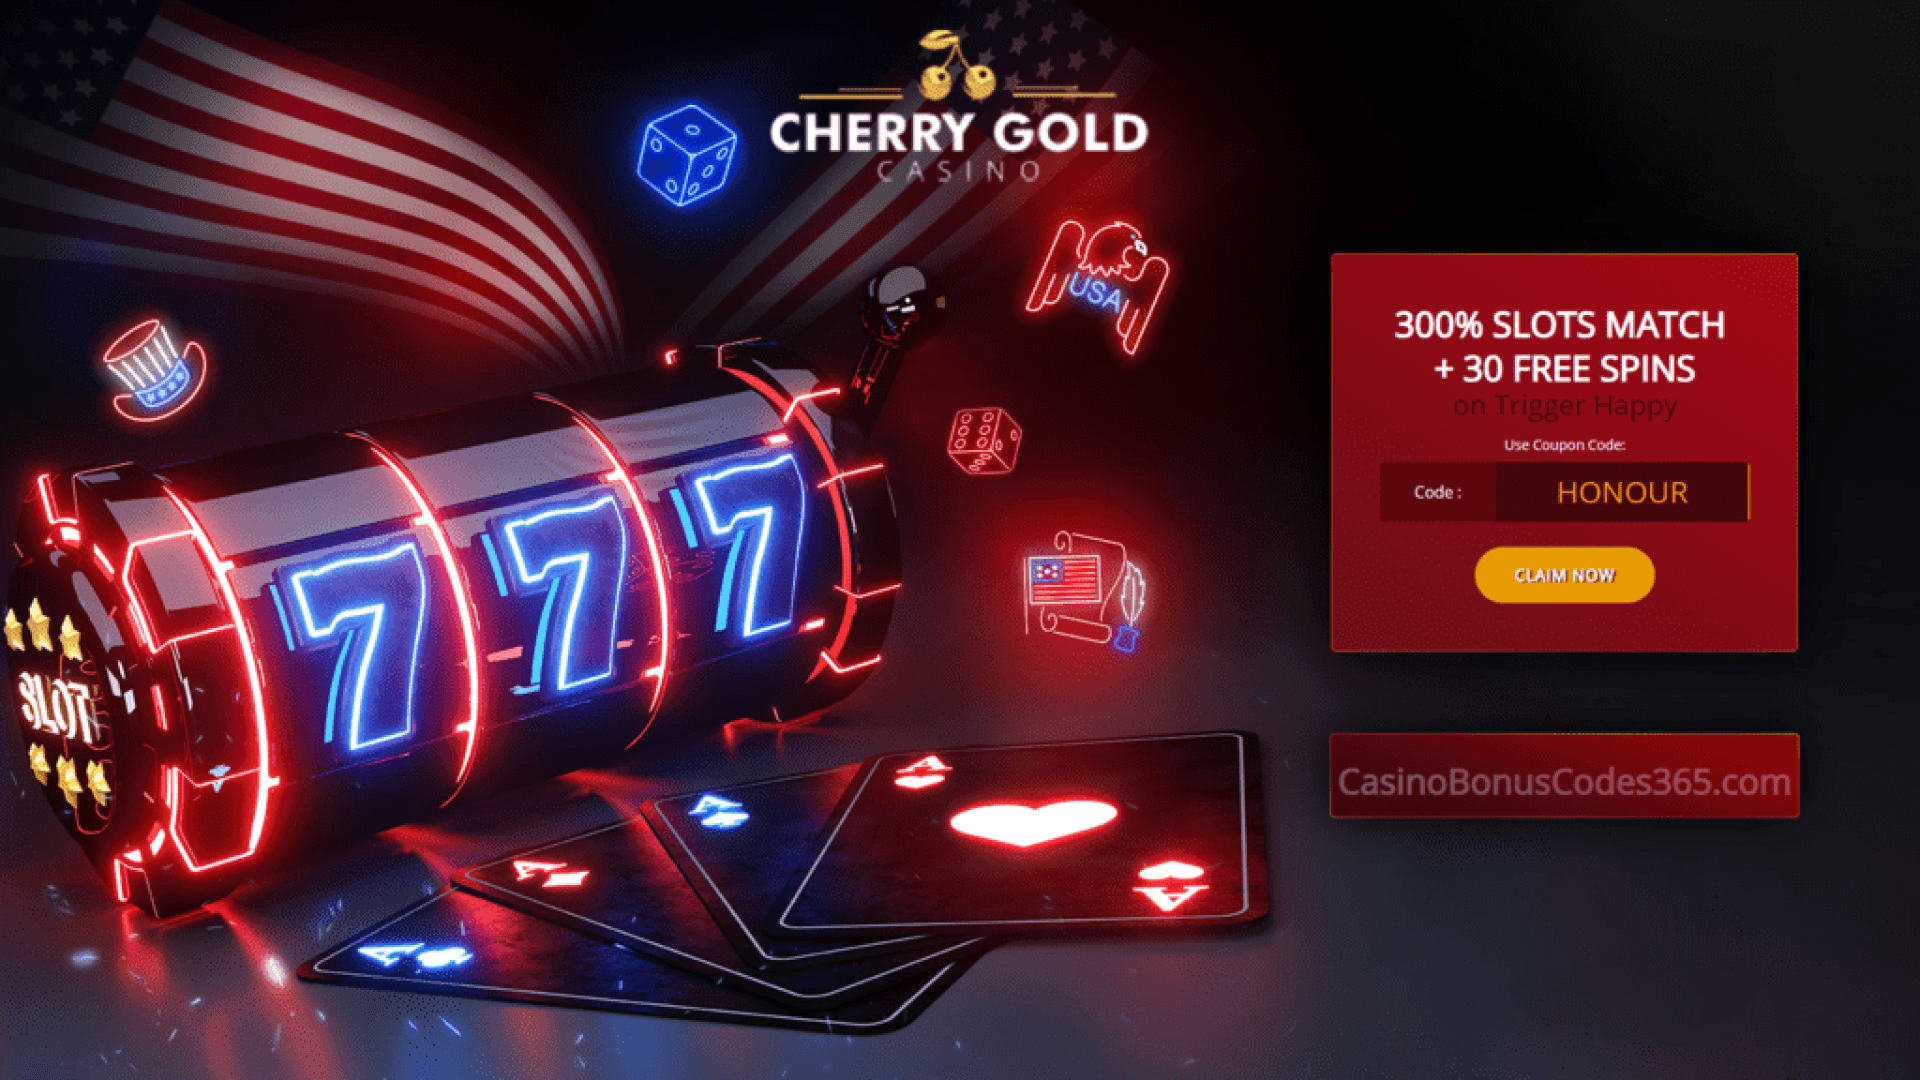 Cherry Gold Casino 300% Match Bonus plus 30 FREE Spins RTG Trigger Happy Independence Day Promo